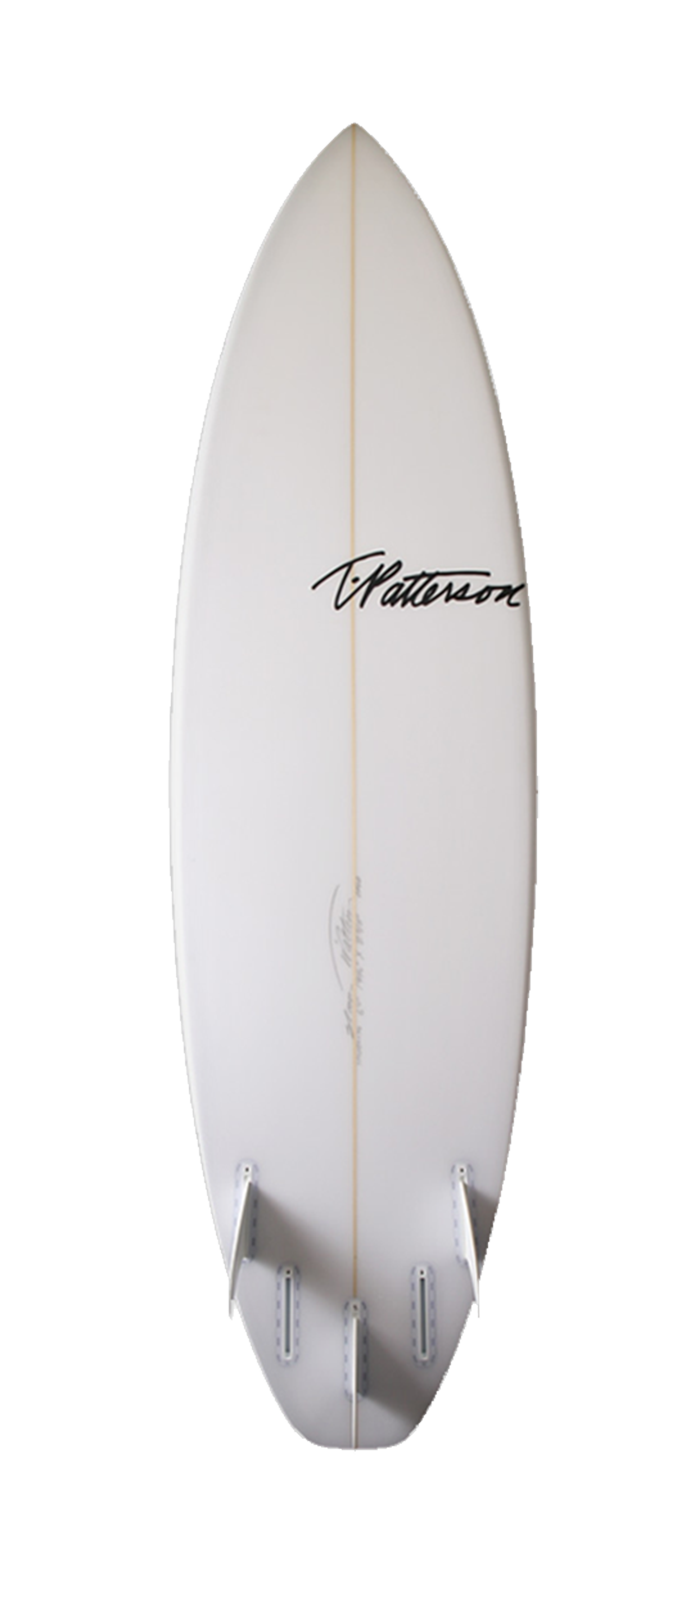 The Spud surfboard model bottom